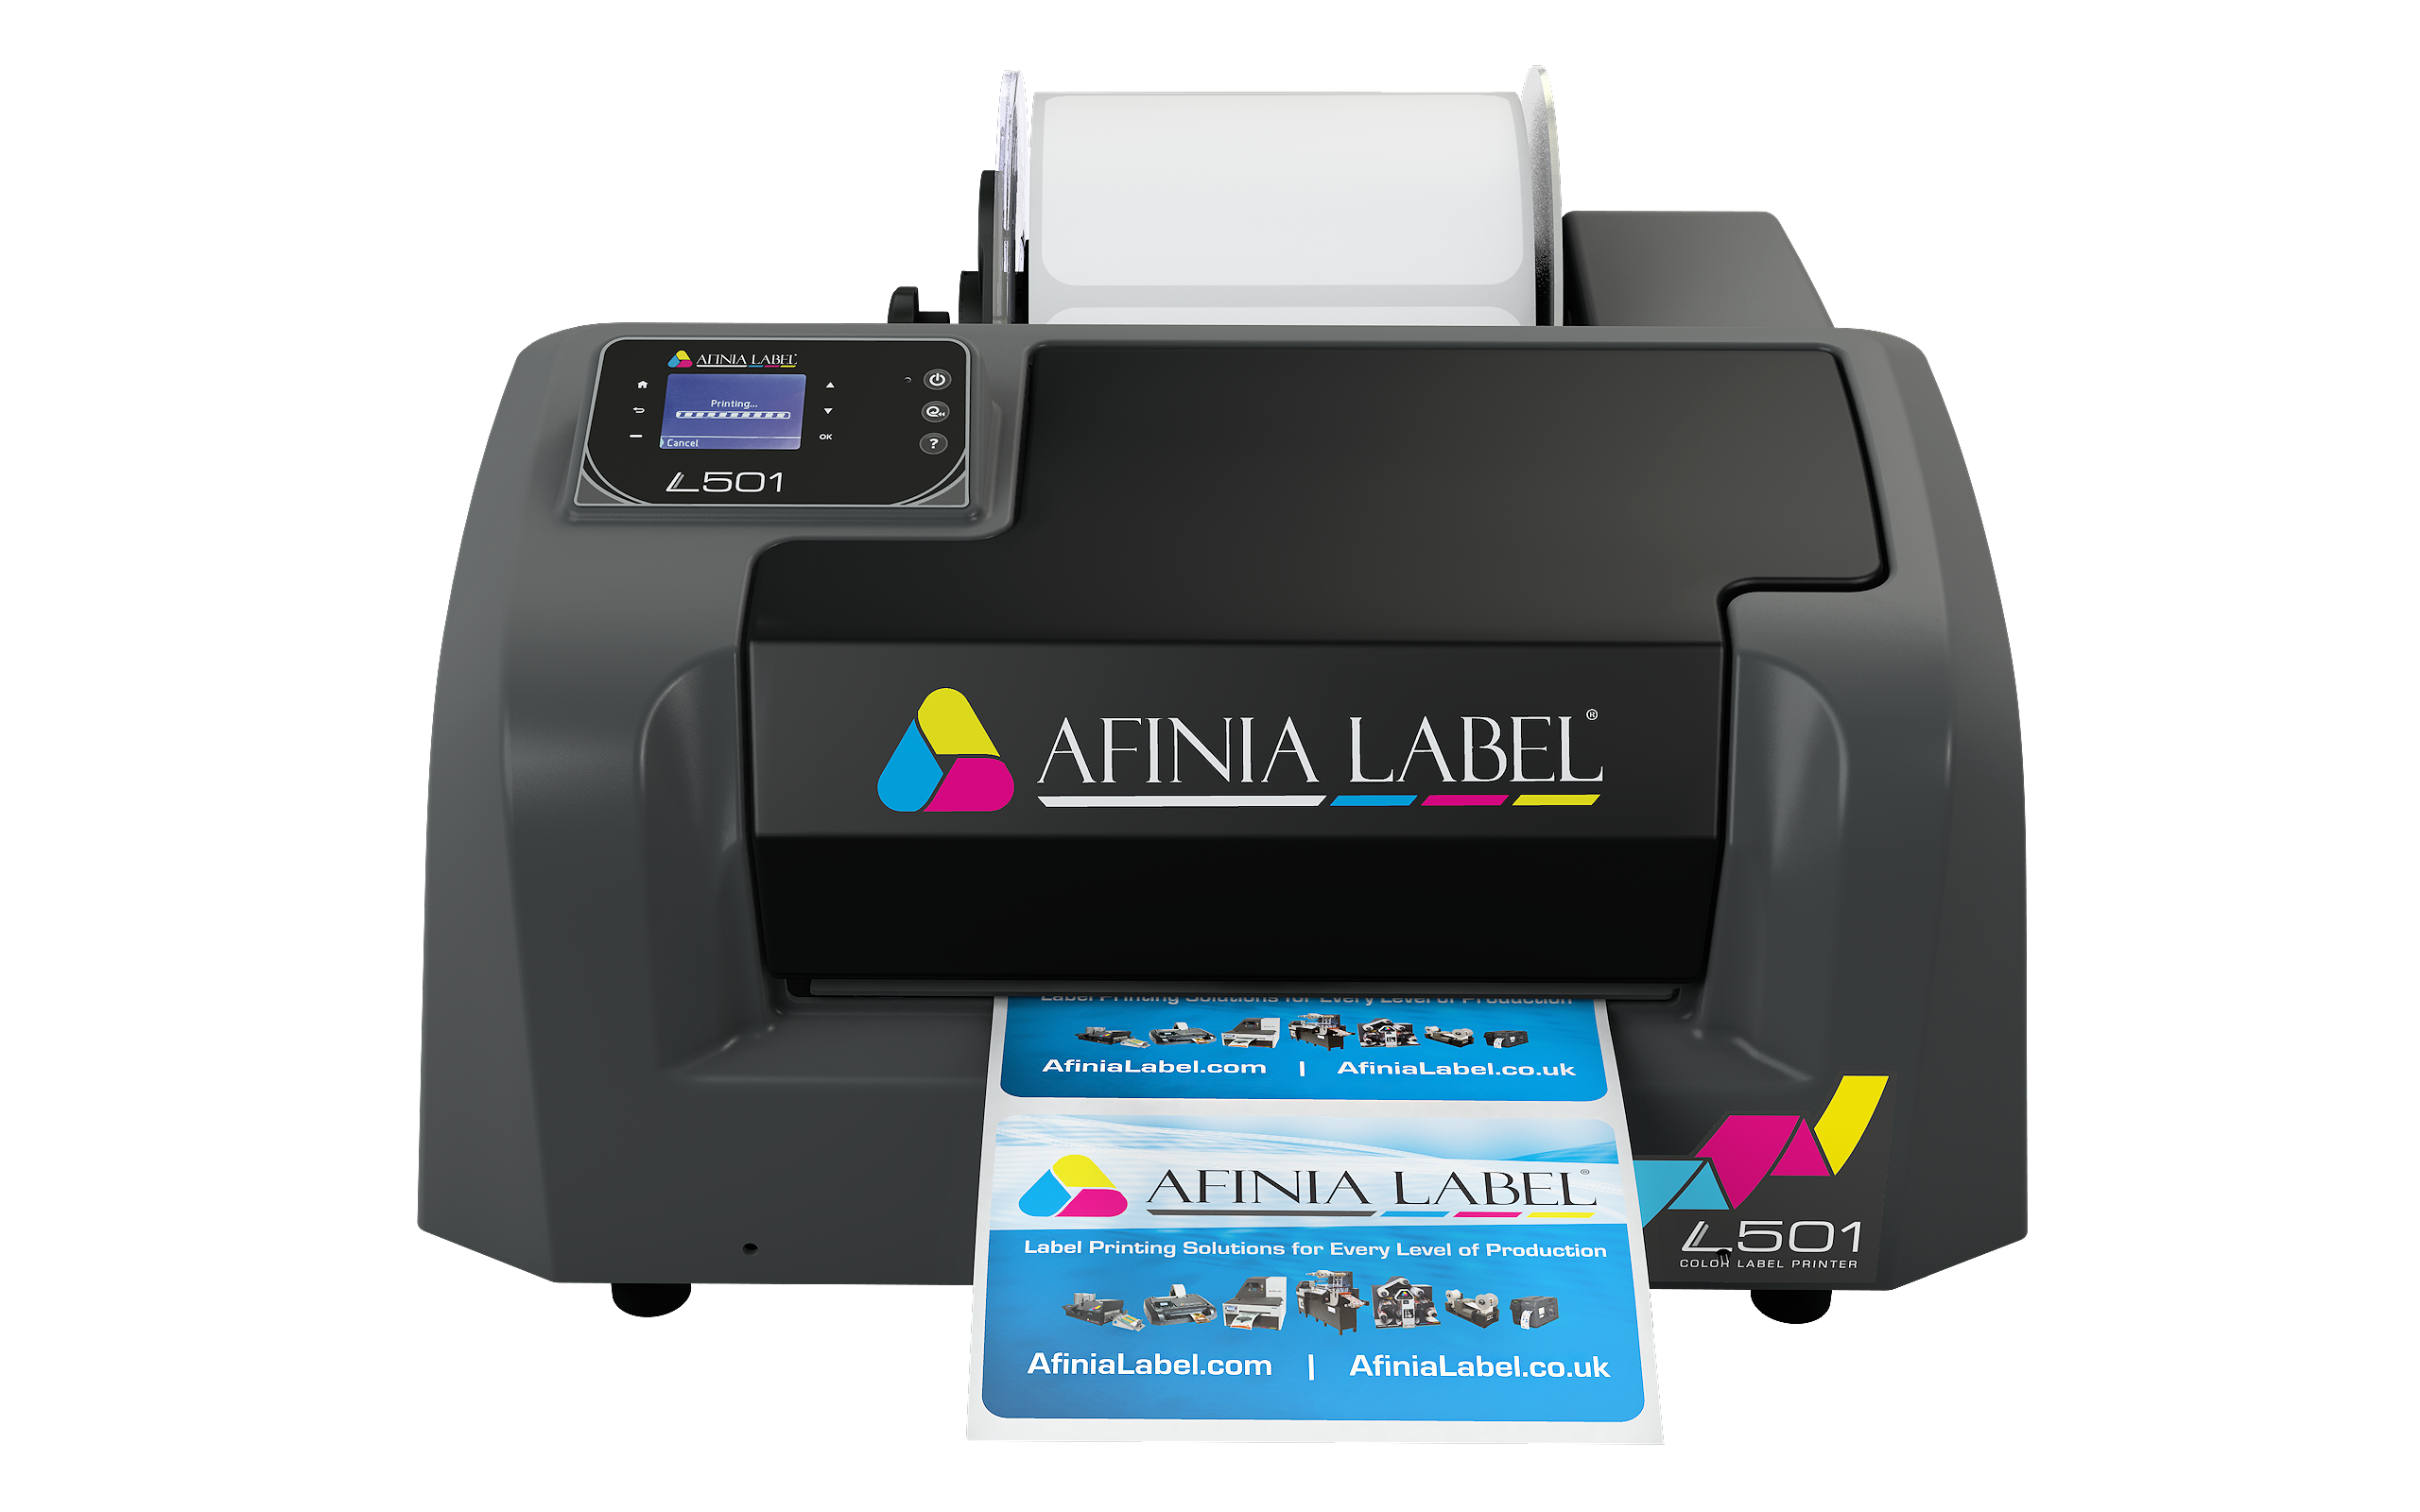 L501 for coffee talk - Introducing The New Texpak/AF501 Printer